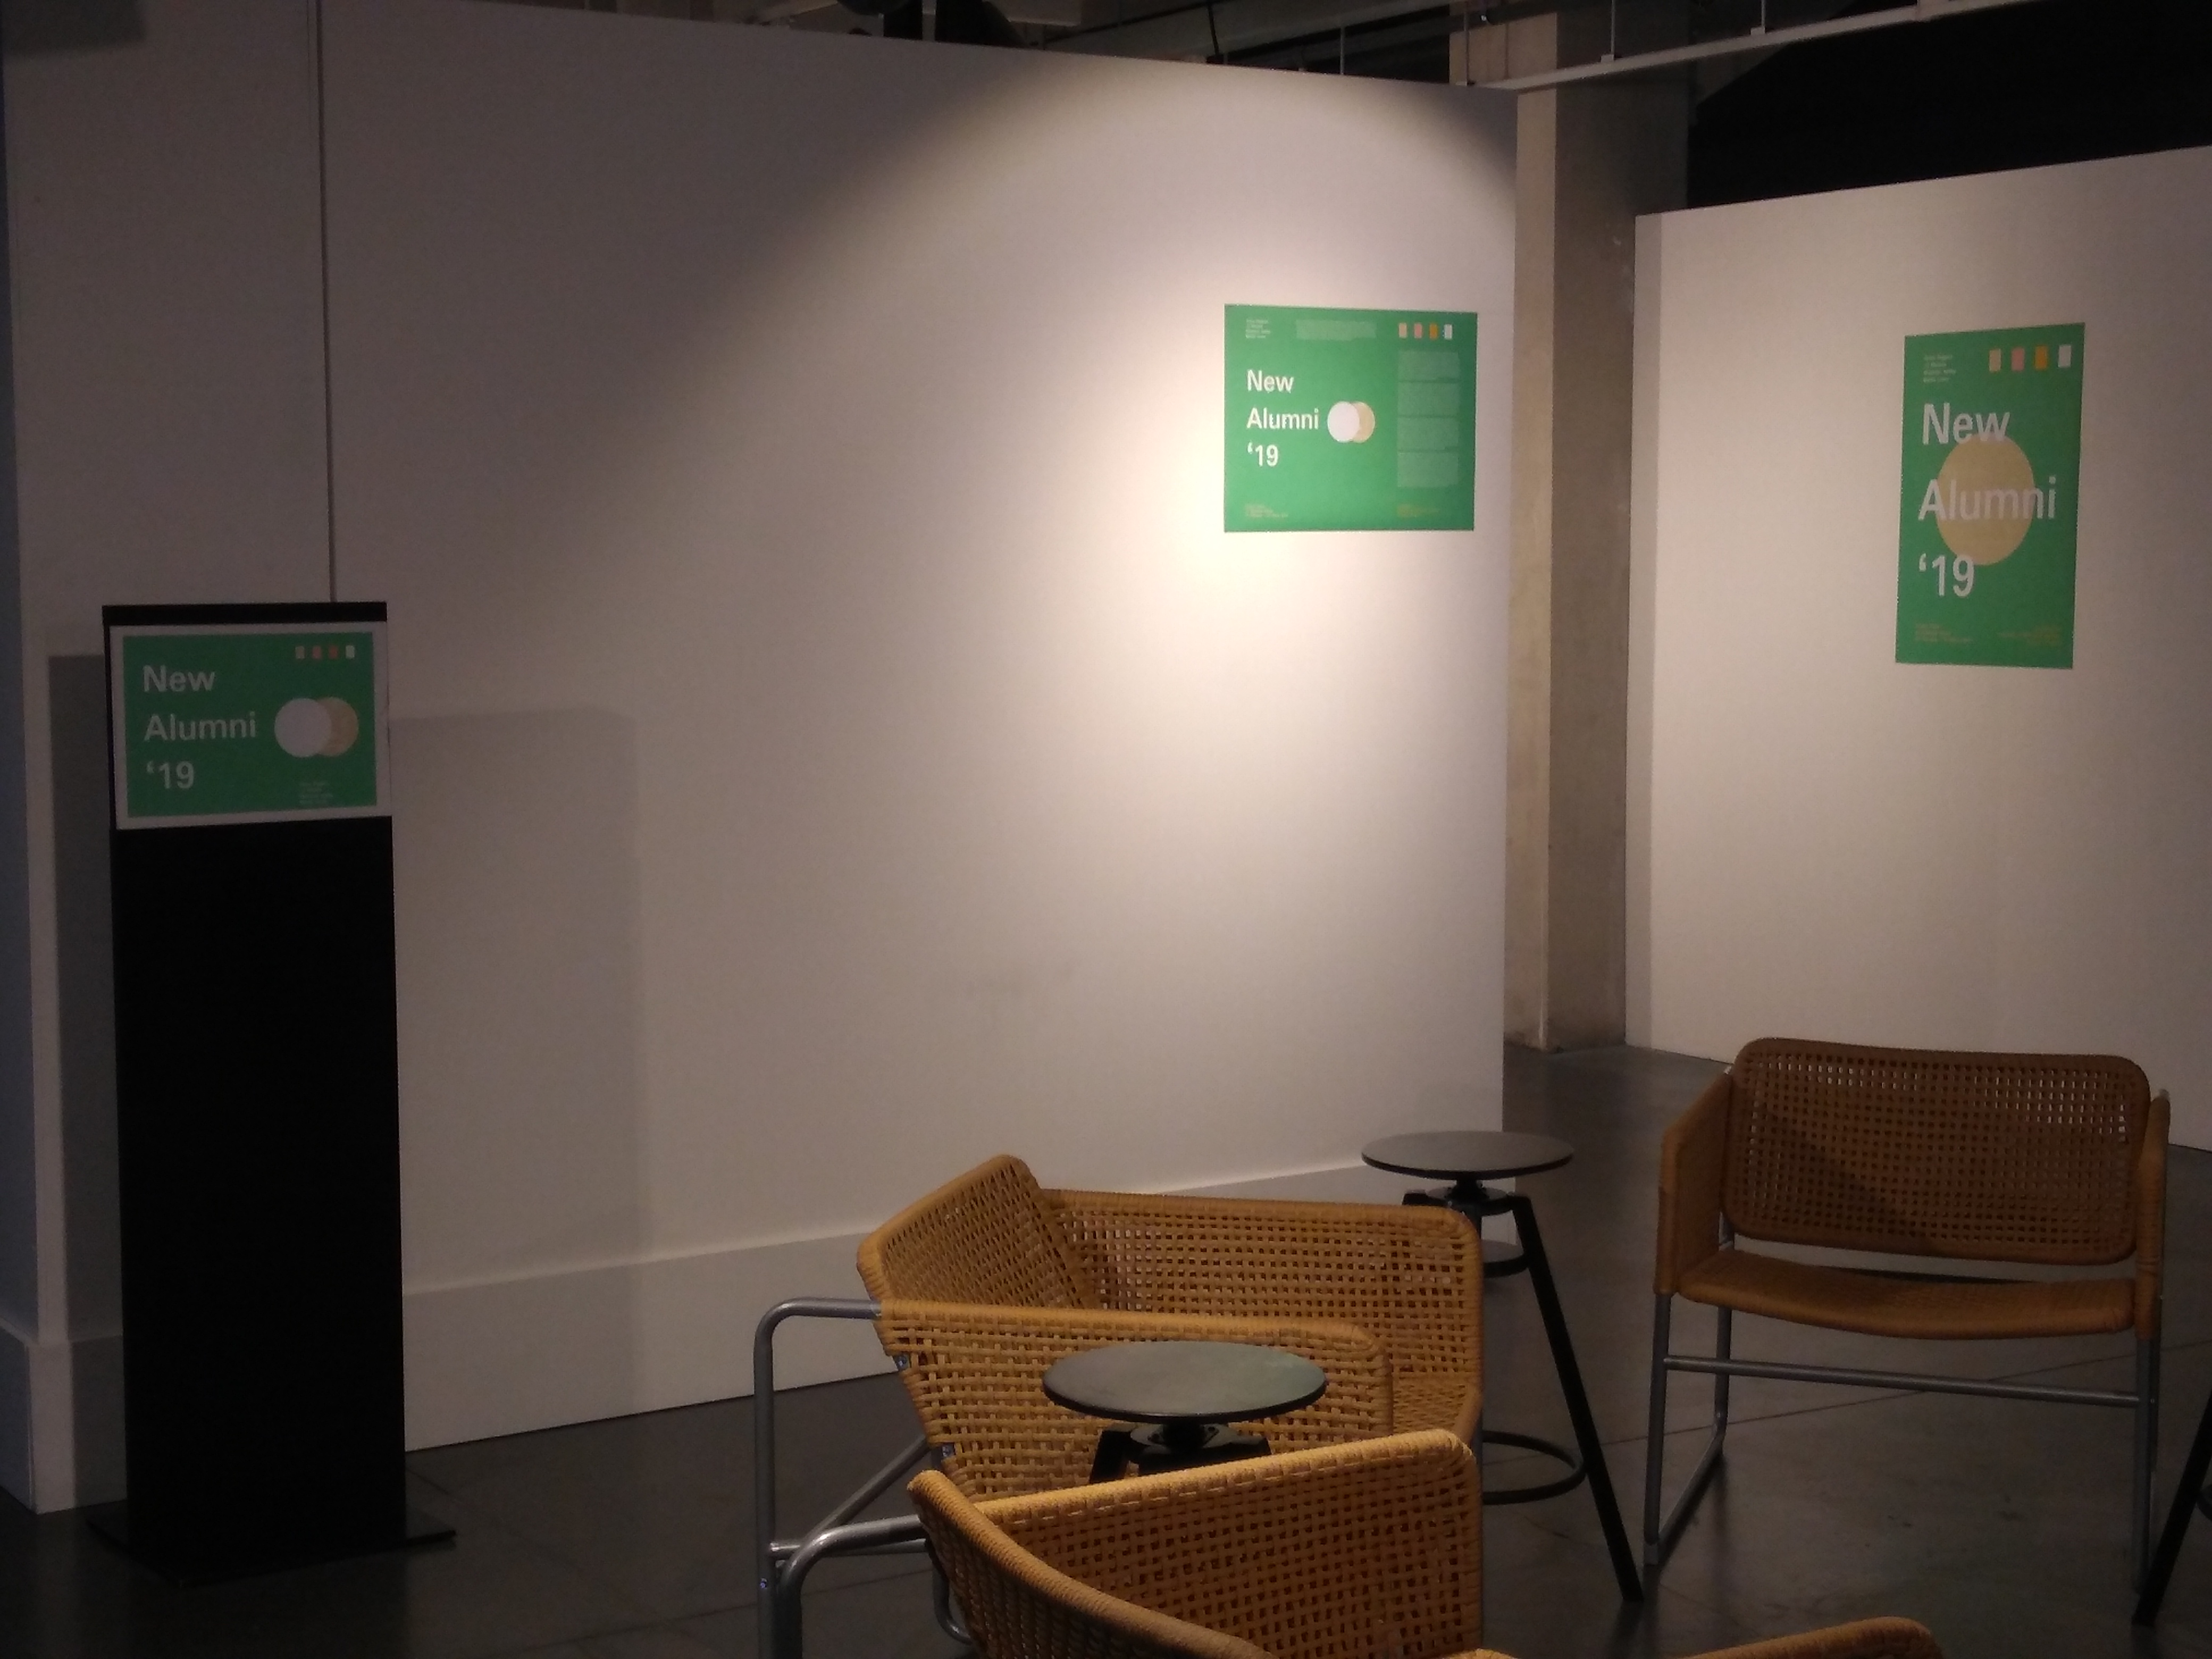 Seayting space before the entrance of the exhibition from which we can wee the exhibitoon signage and posters